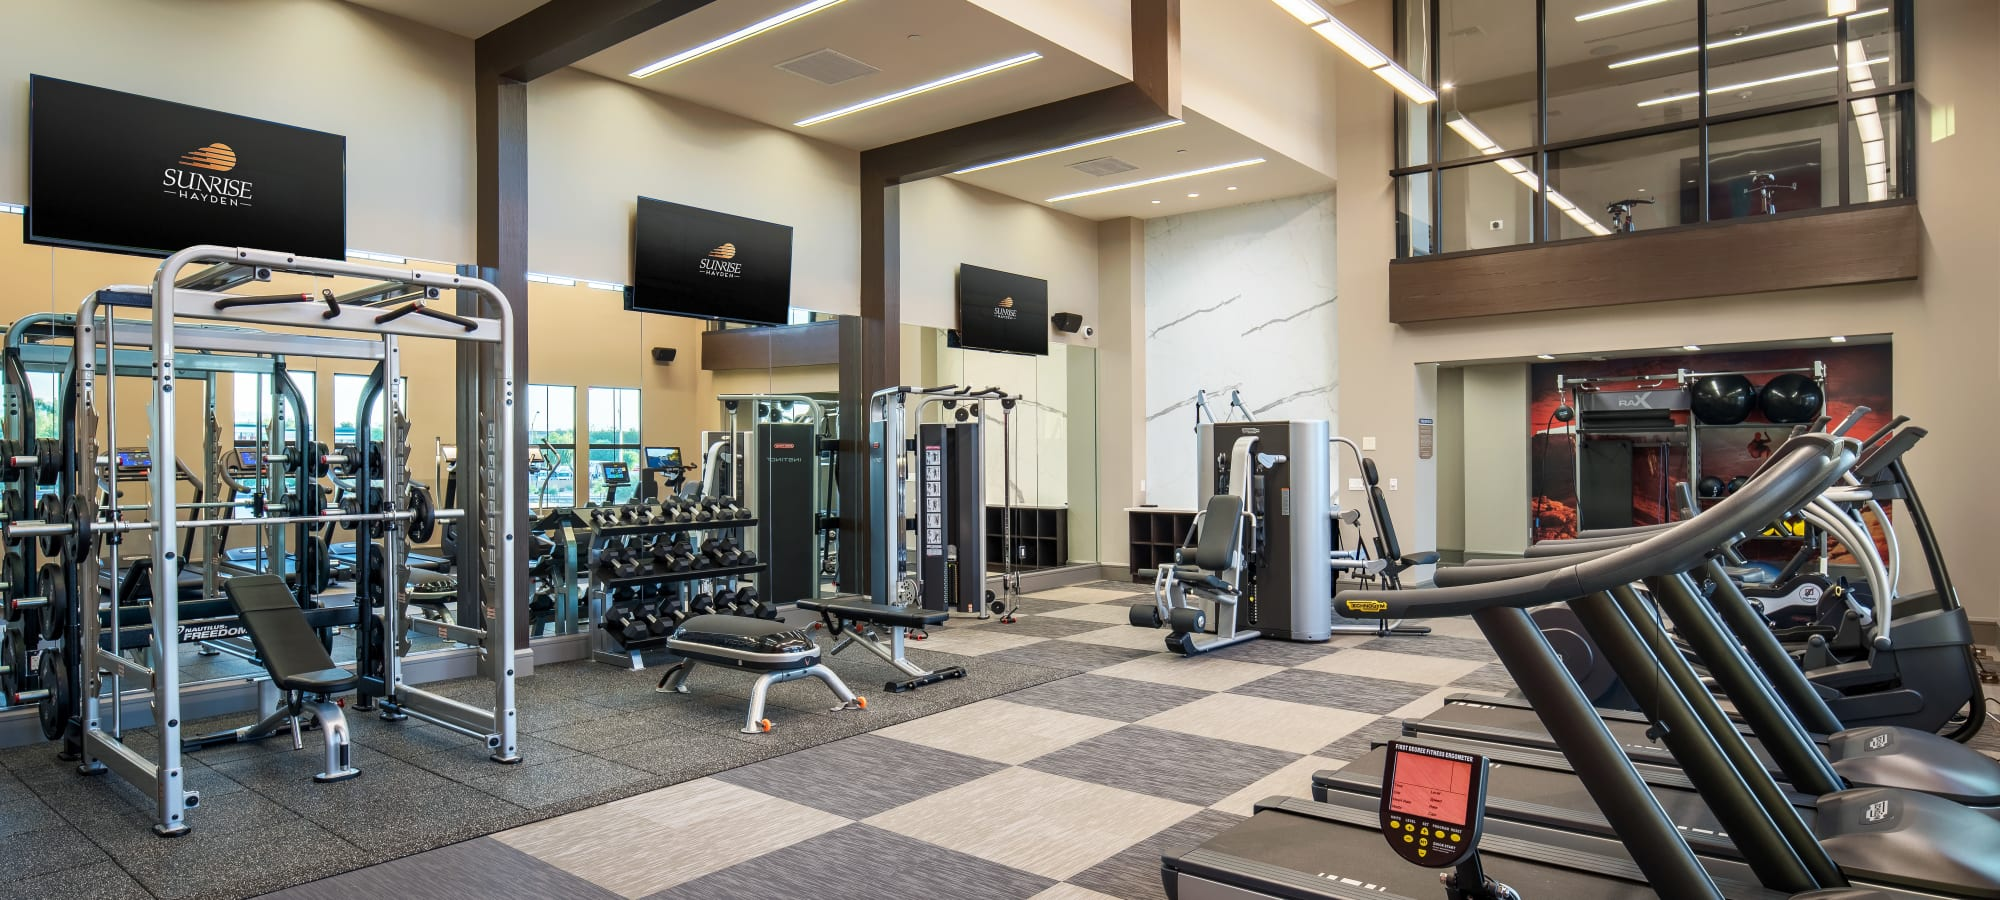 Well-equipped fitness center at The Core Scottsdale in Scottsdale, Arizona